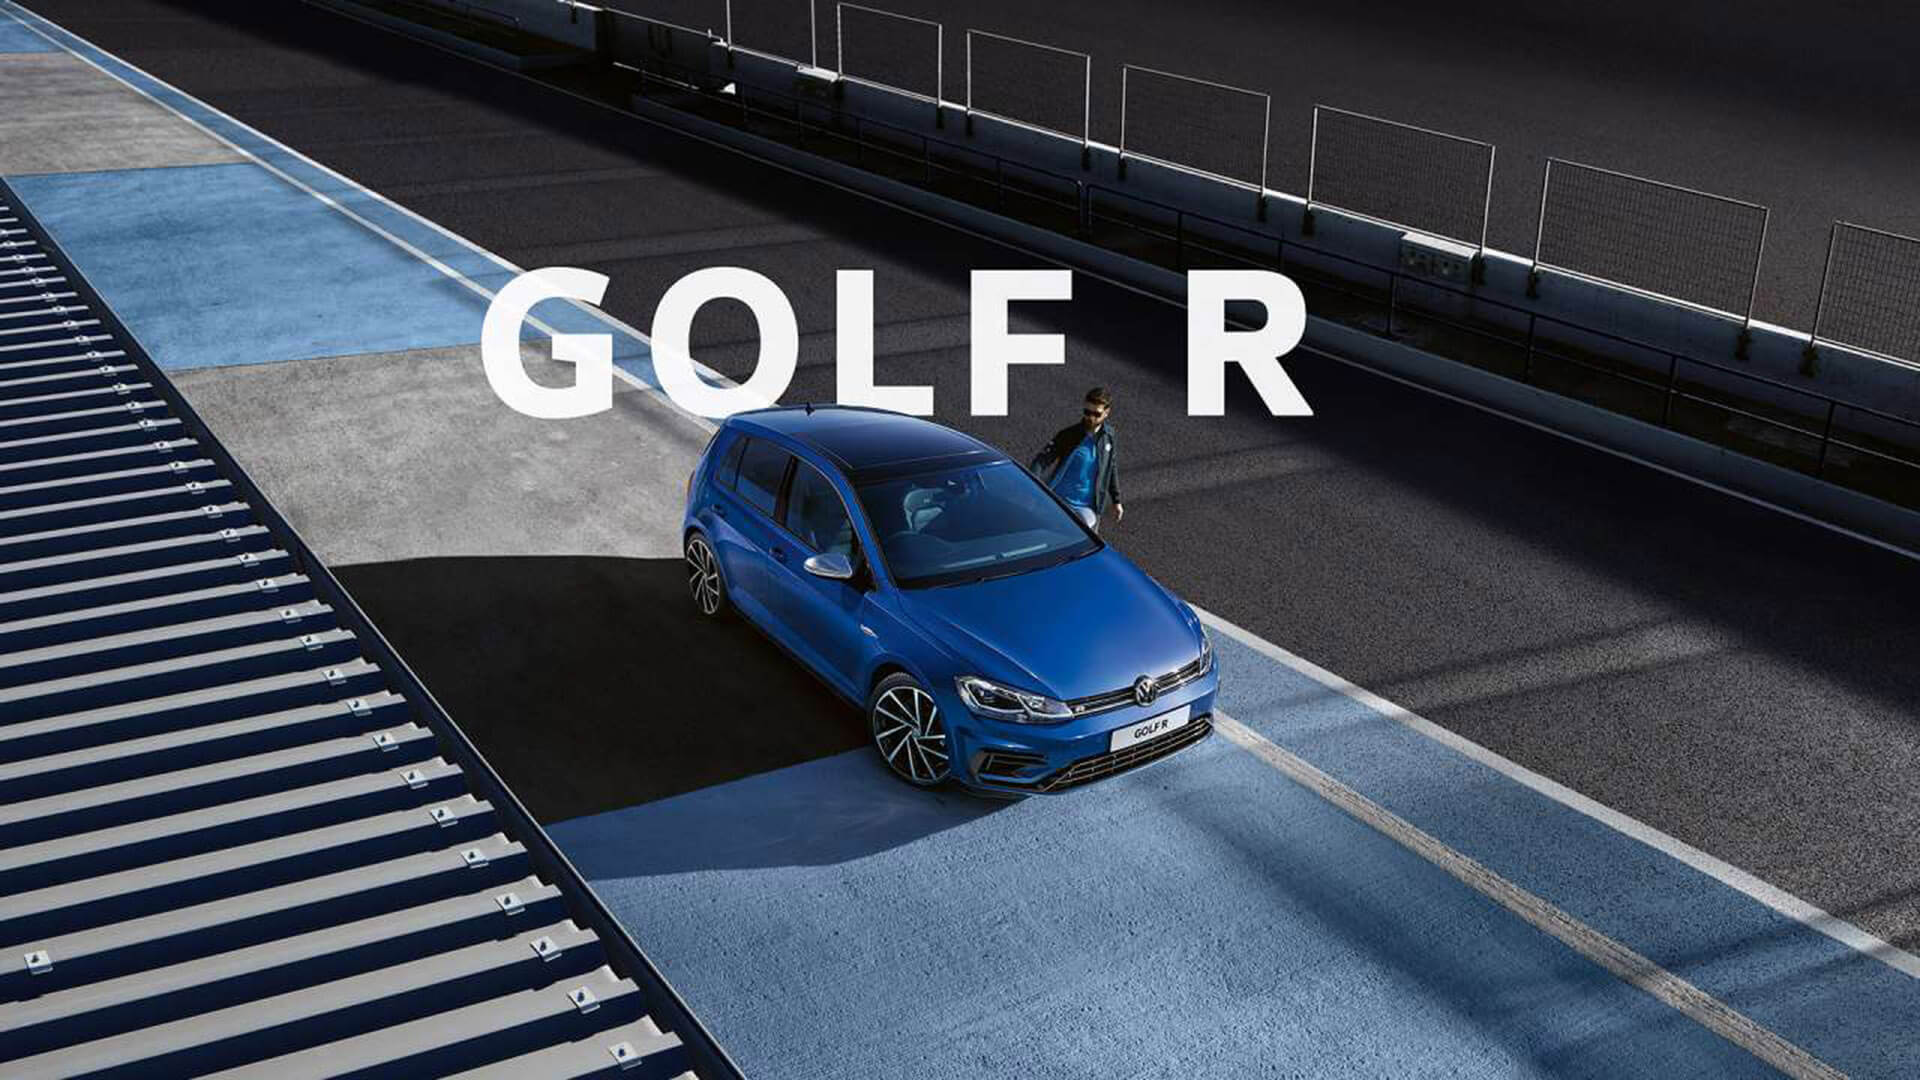 Golf R Feel the thrill.